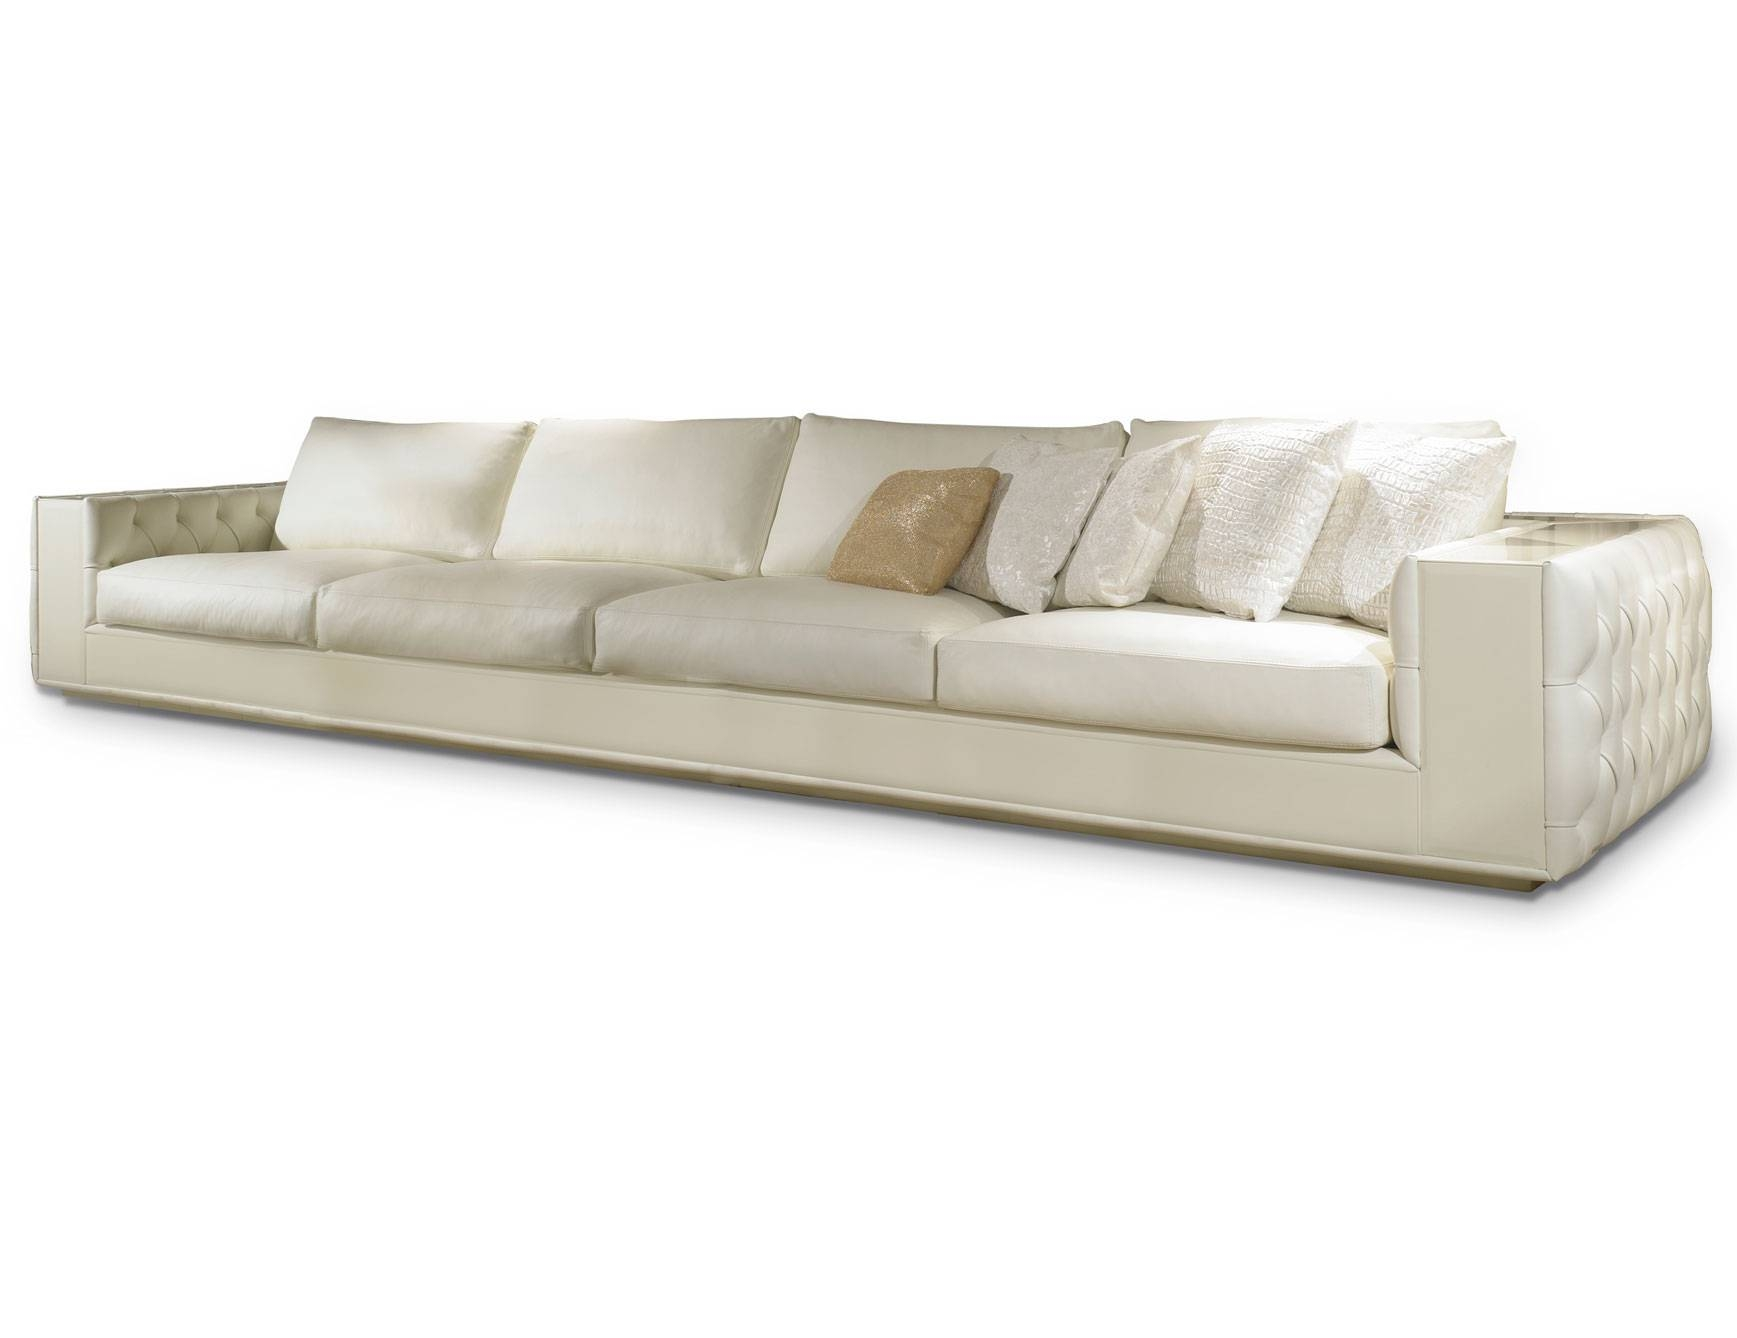 Nella Vetrina Visionnaire Ipe Cavalli Ashton Luxury Italian Sofa pertaining to Ashton Sofas (Image 13 of 15)